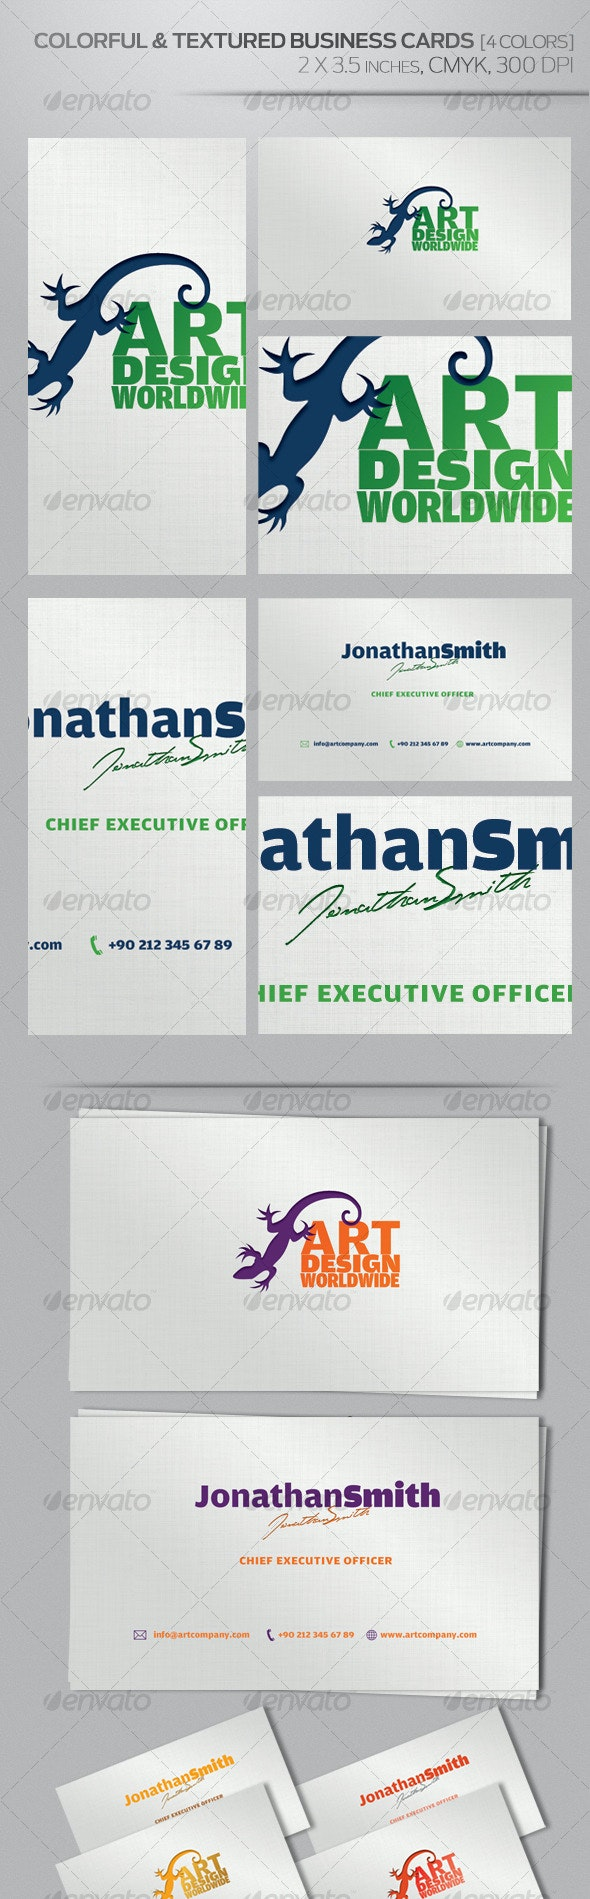 Colorful & Textured Business Cards [4 Colours] - Creative Business Cards